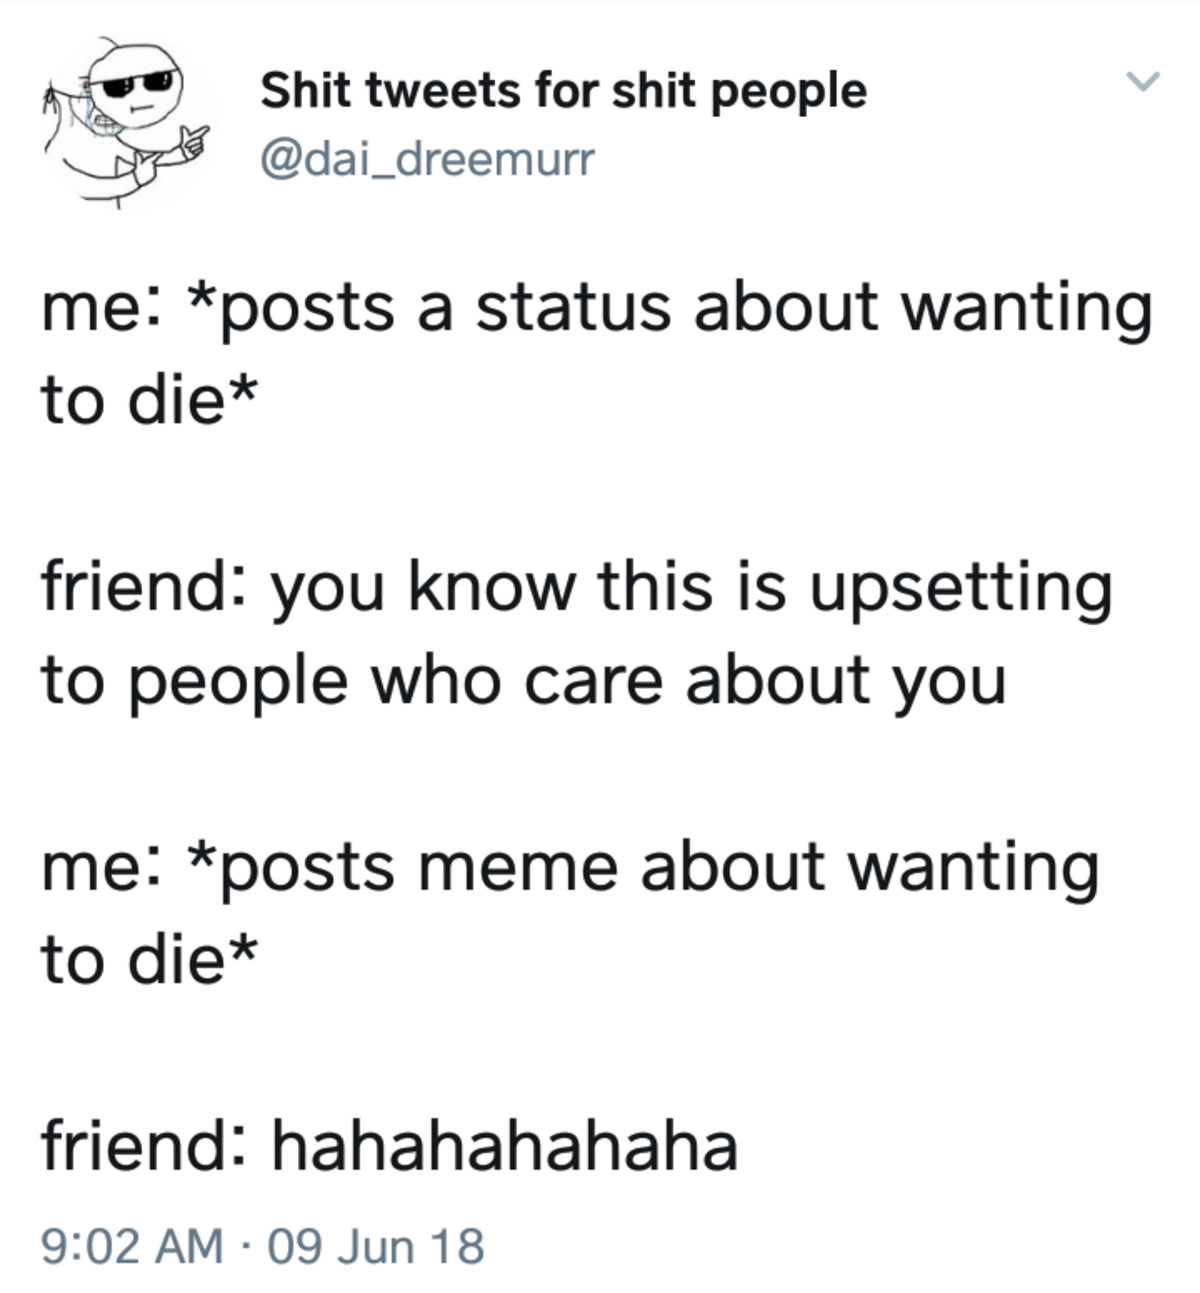 The difference. . Shit tweets for shit people 'hsp'' iii) me: posts ital status about wanting to div friend: you know this is upsetting to people who care about